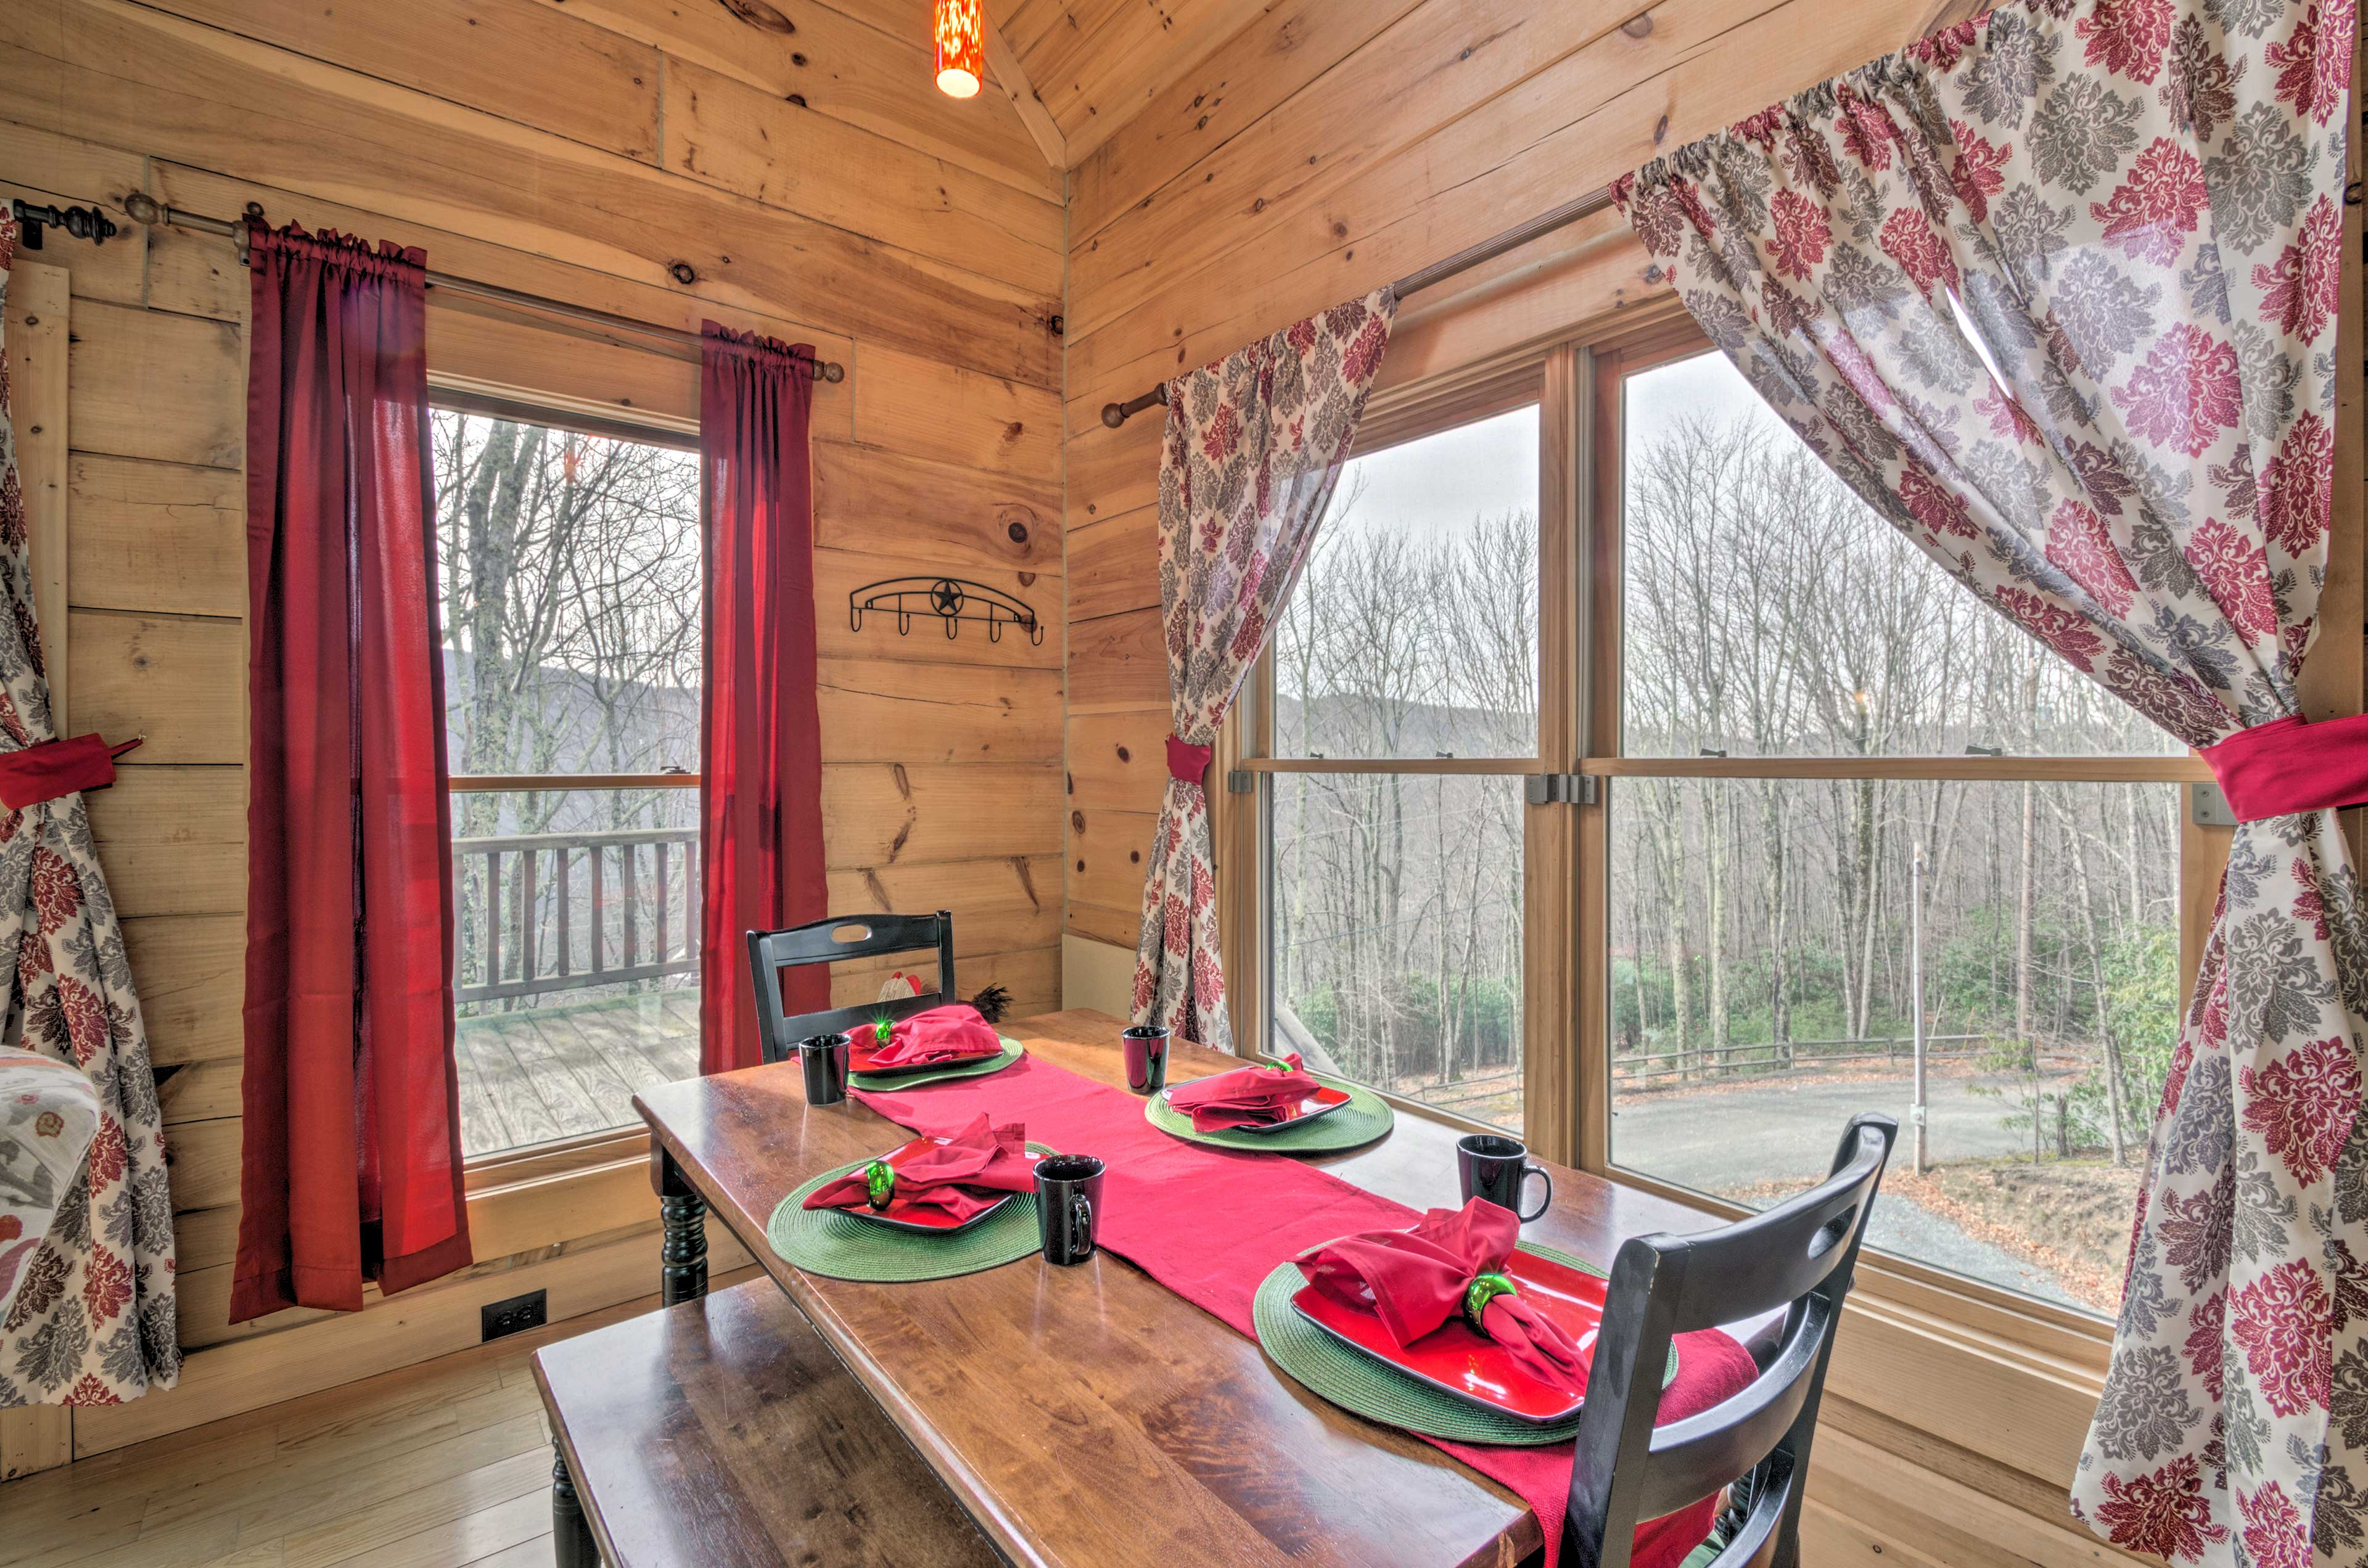 Dine in style at this 6-person table set beside the mountain views.